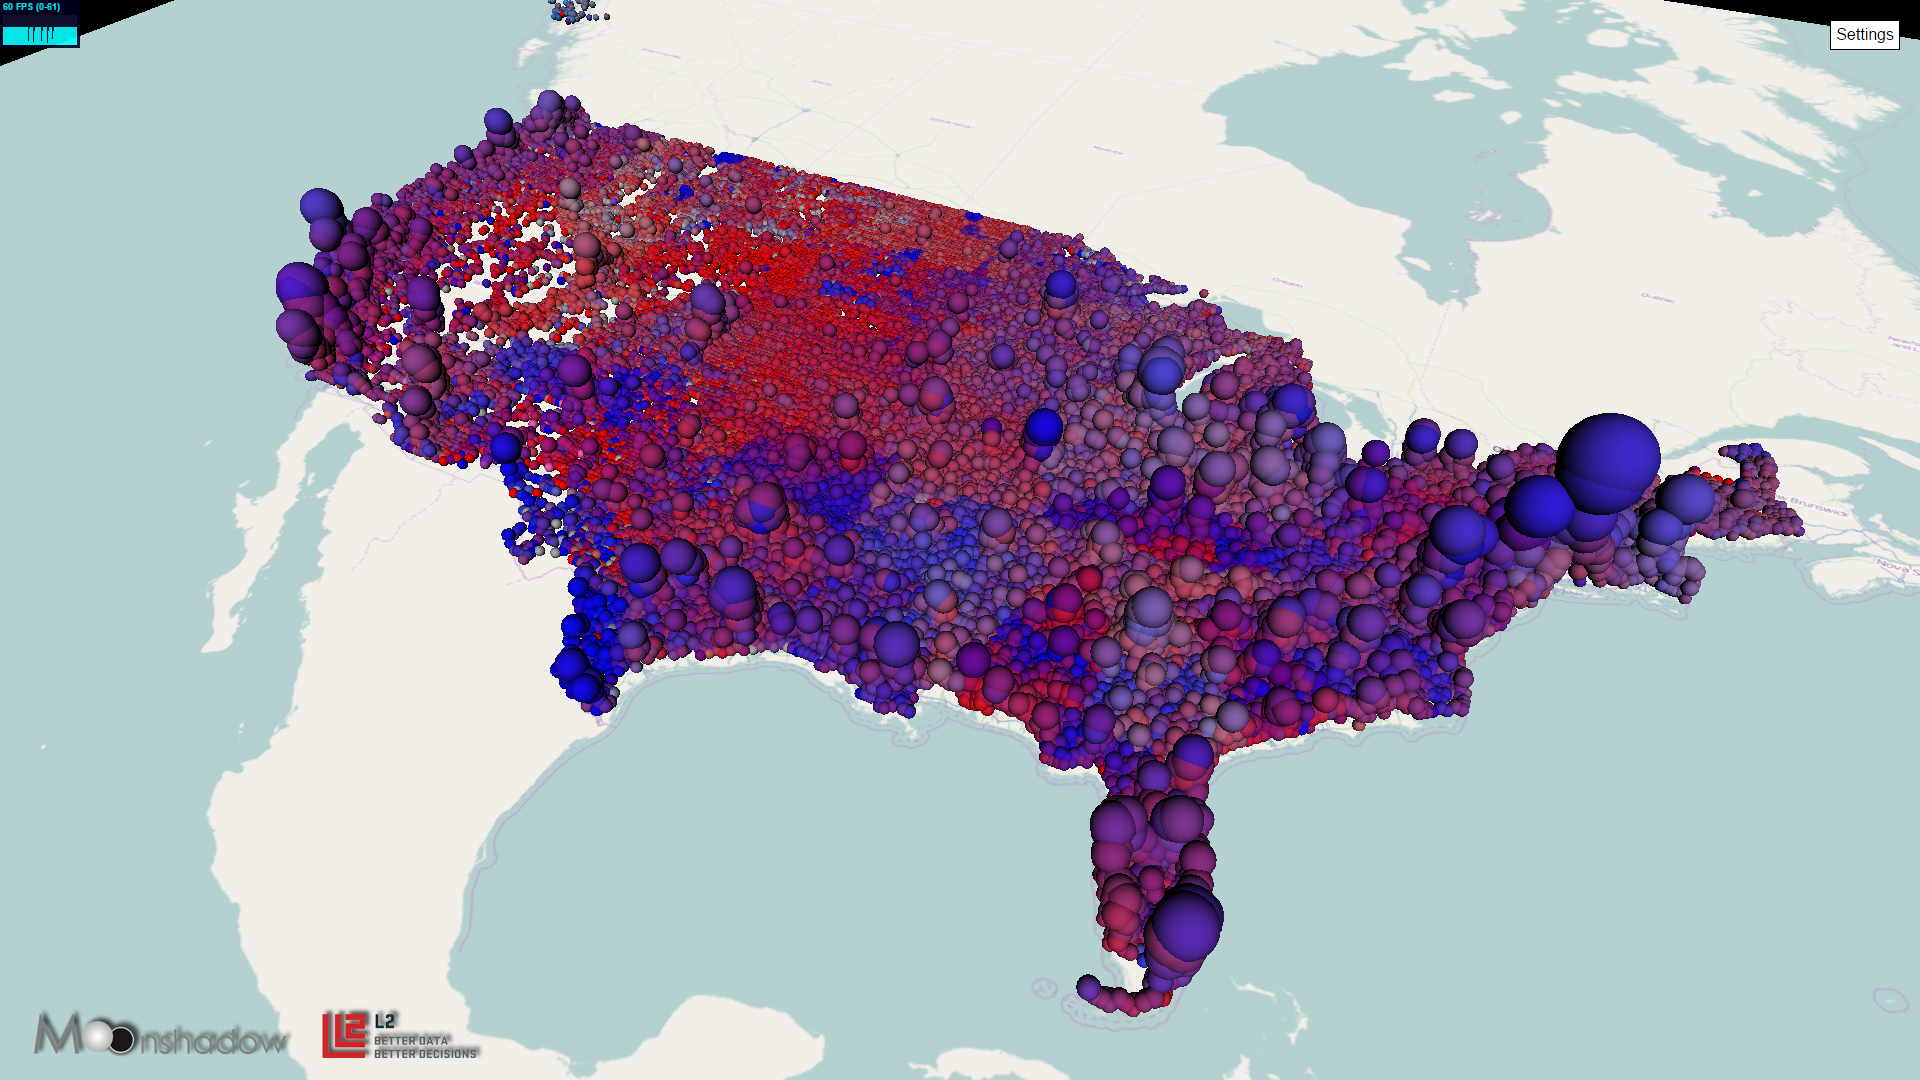 Portfolio Of Geospatial Visualization Images  Moonshadow